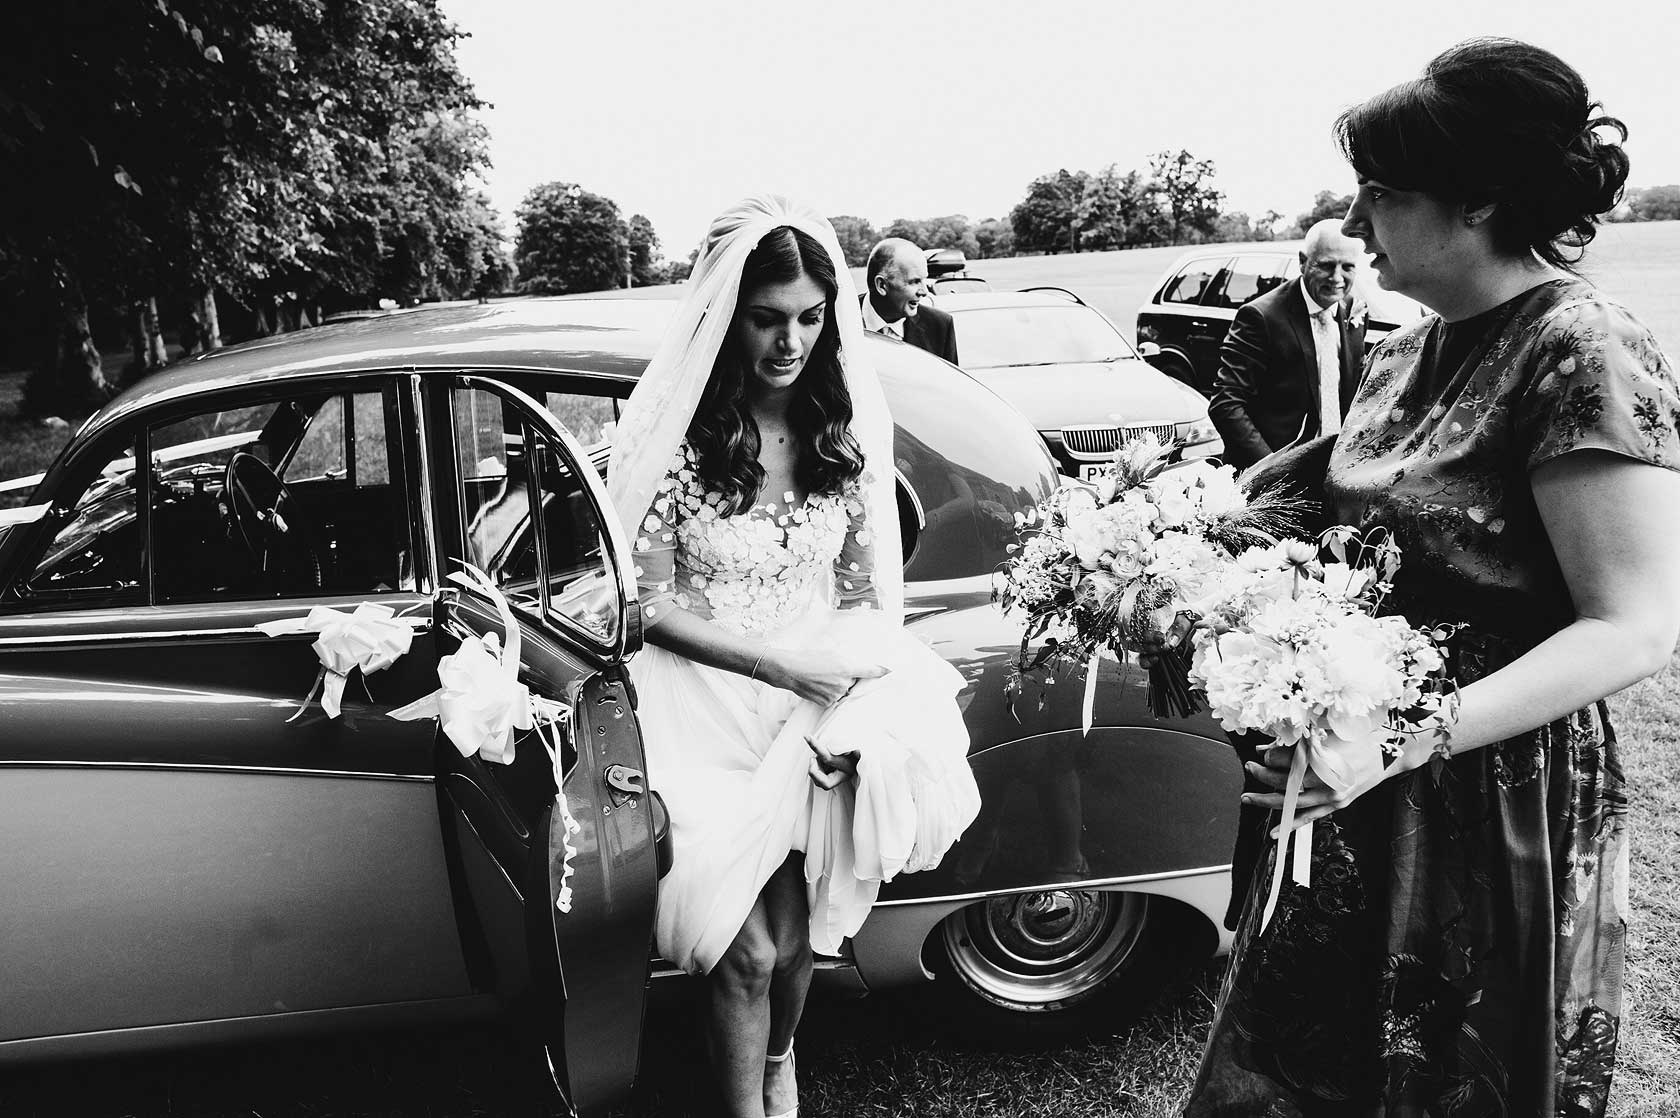 Reportage Wedding Photography in Suffolk